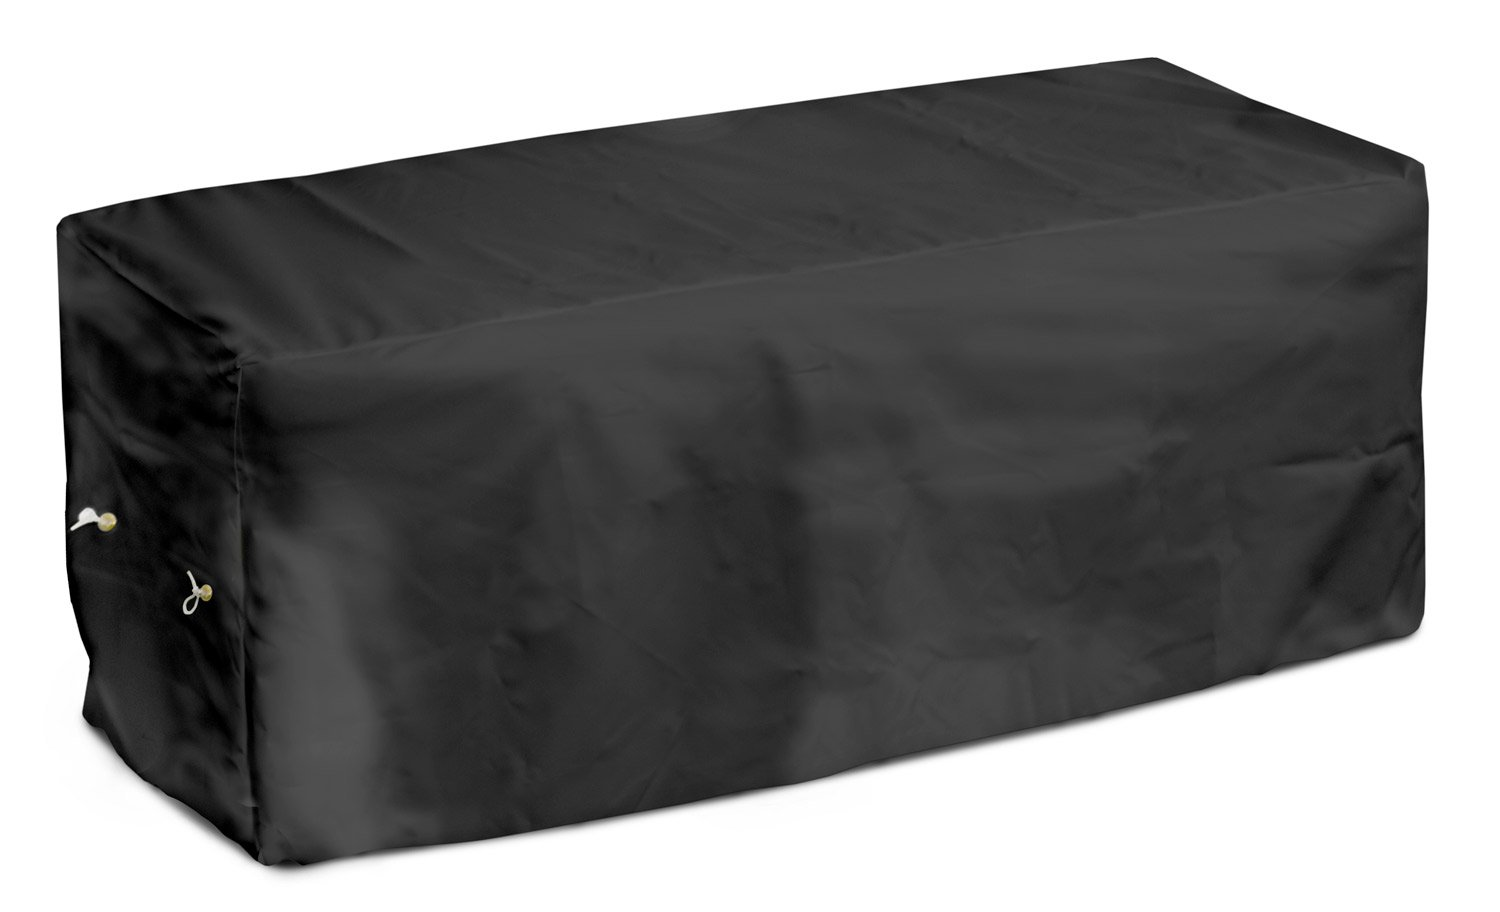 KoverRoos Weathermax 74207 8-Feet Bench Cover, 96-Inch Width by 25-Inch Diameter by 36-Inch Height, Black by KOVERROOS (Image #1)